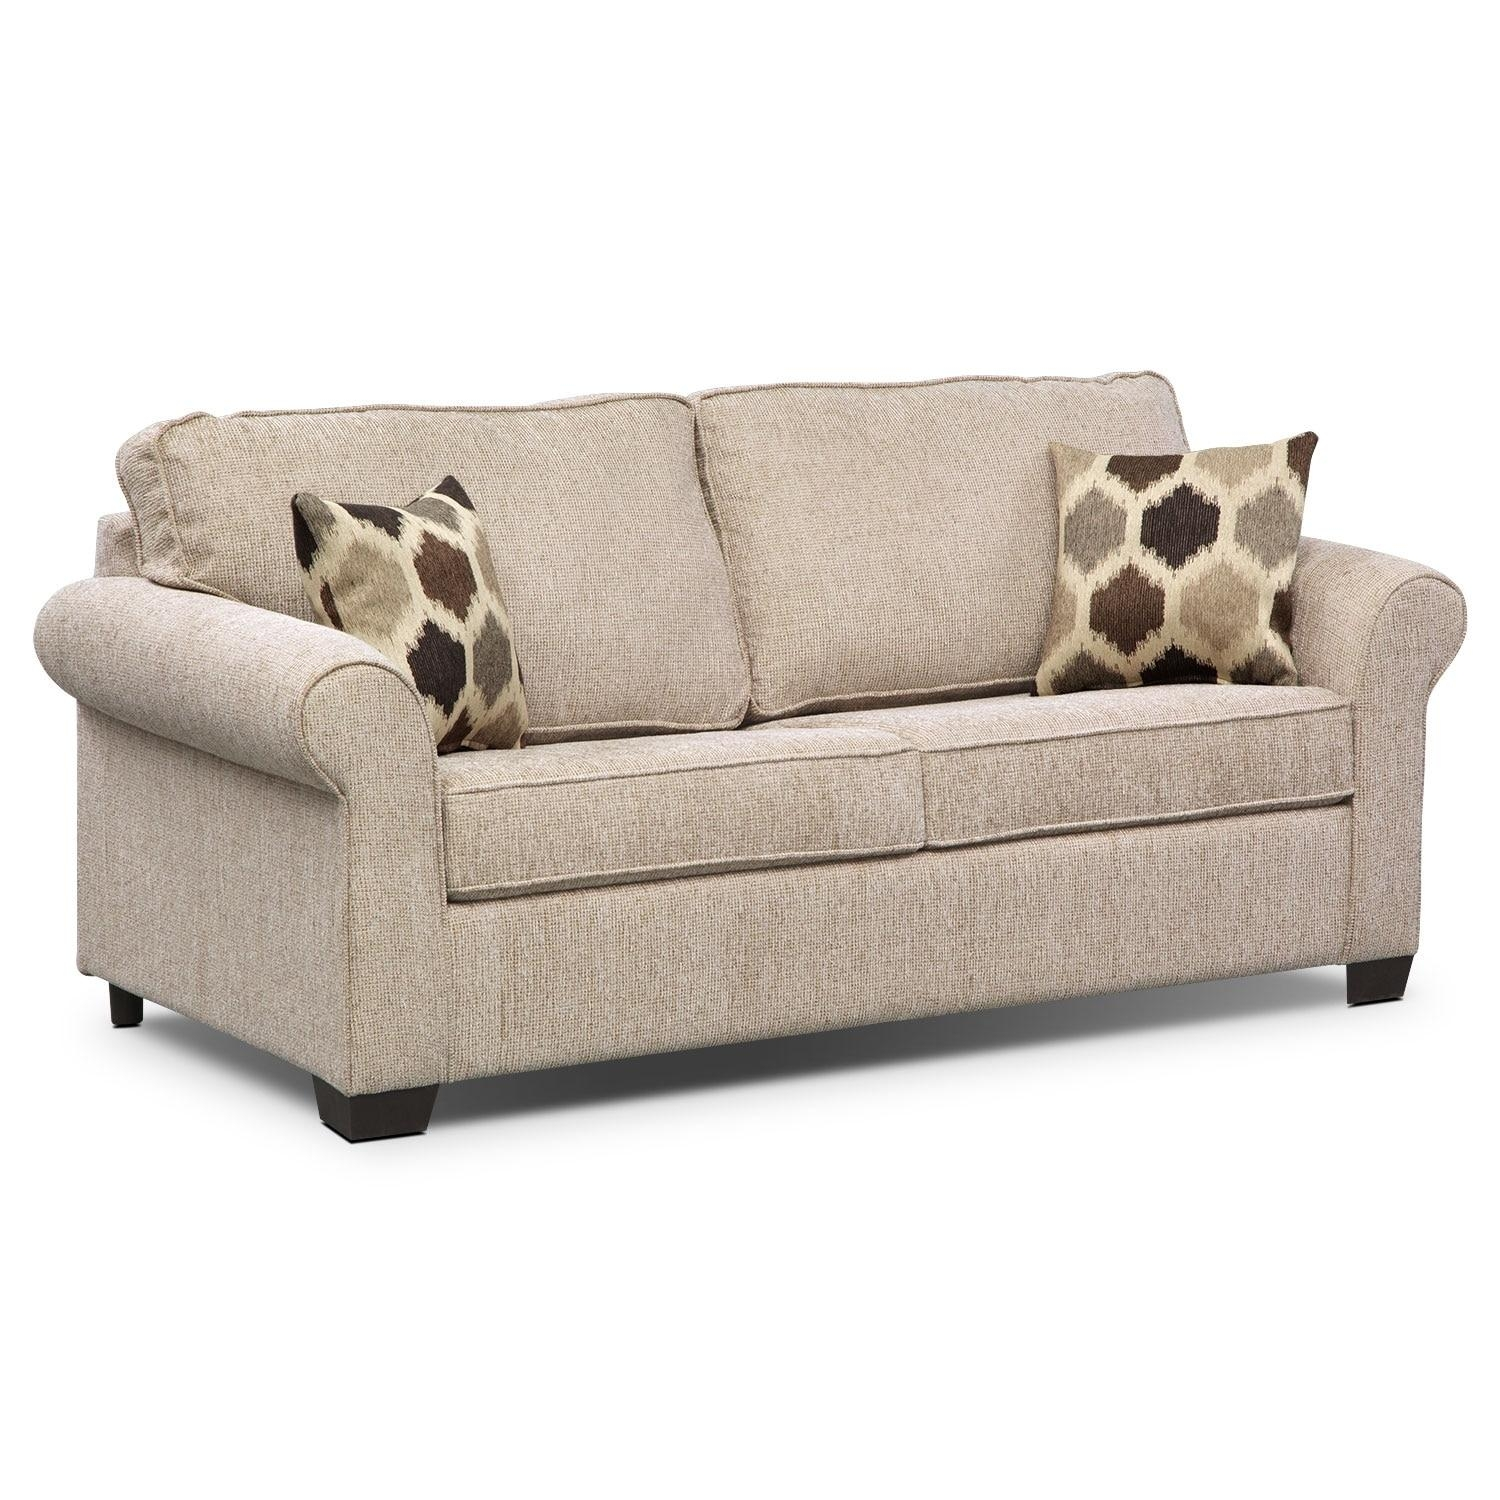 Sleeper Sofas | Value City Furniture | Value City Furniture With Full Size Sofa Sleepers (View 21 of 21)